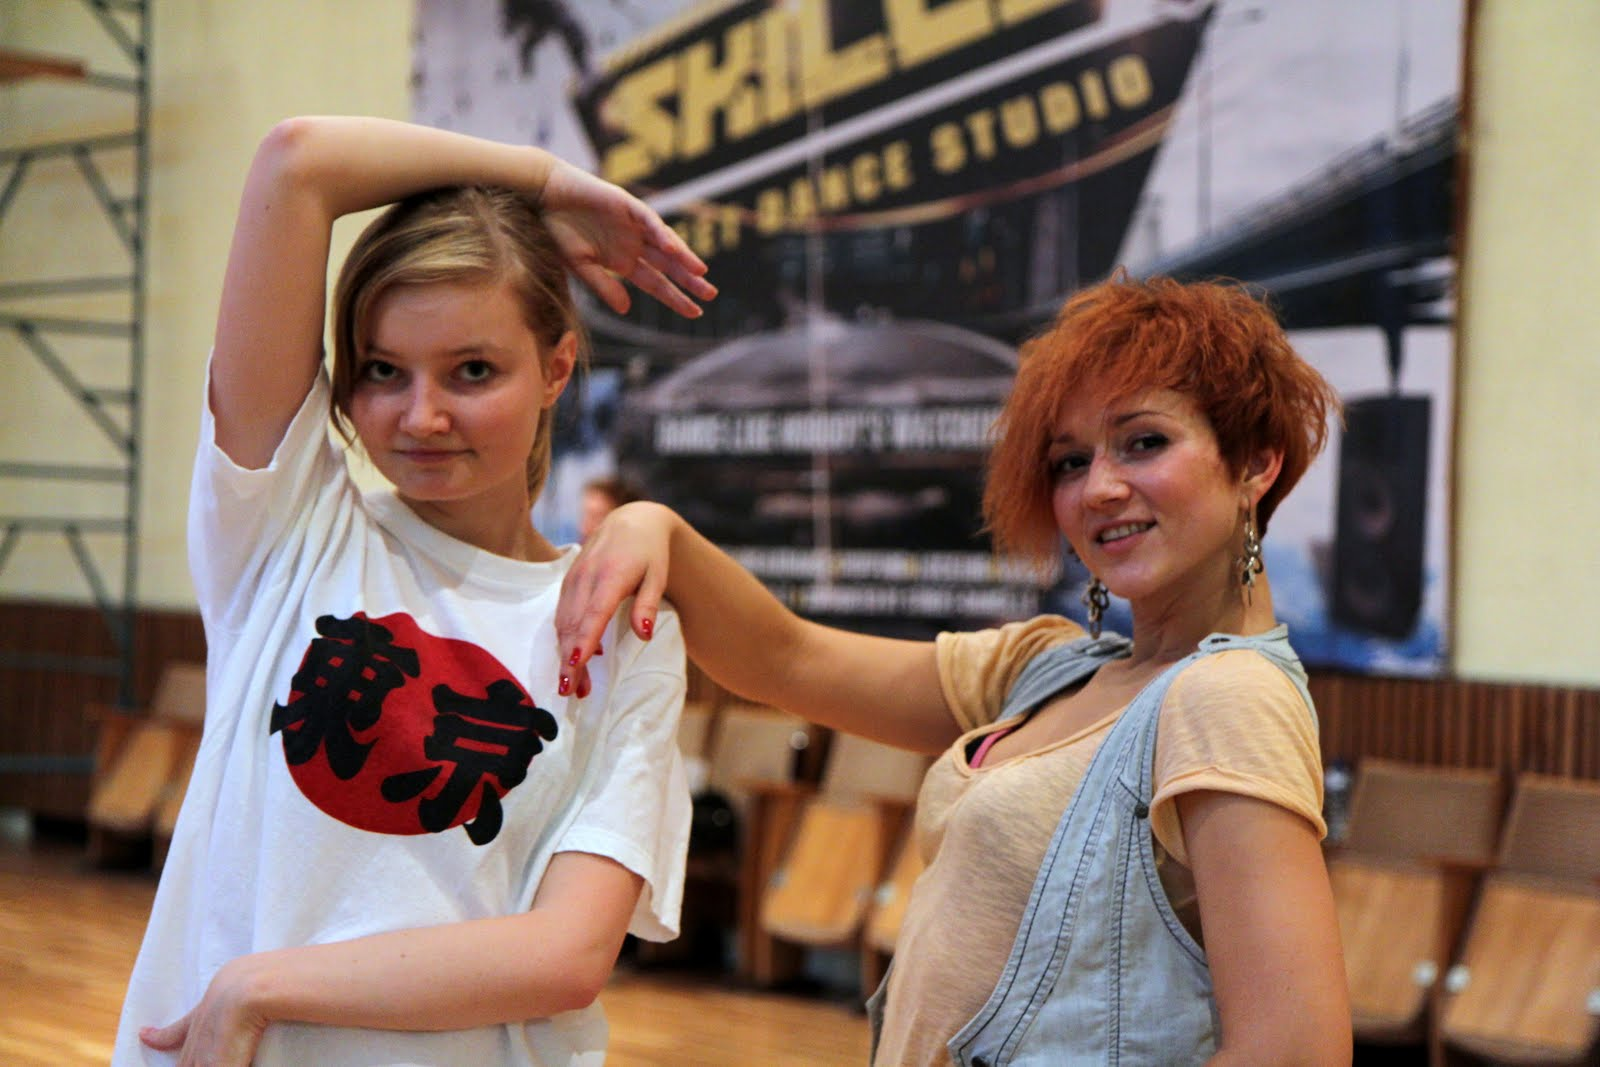 Waacking workshop with Nastya (LV) - IMG_2096.JPG